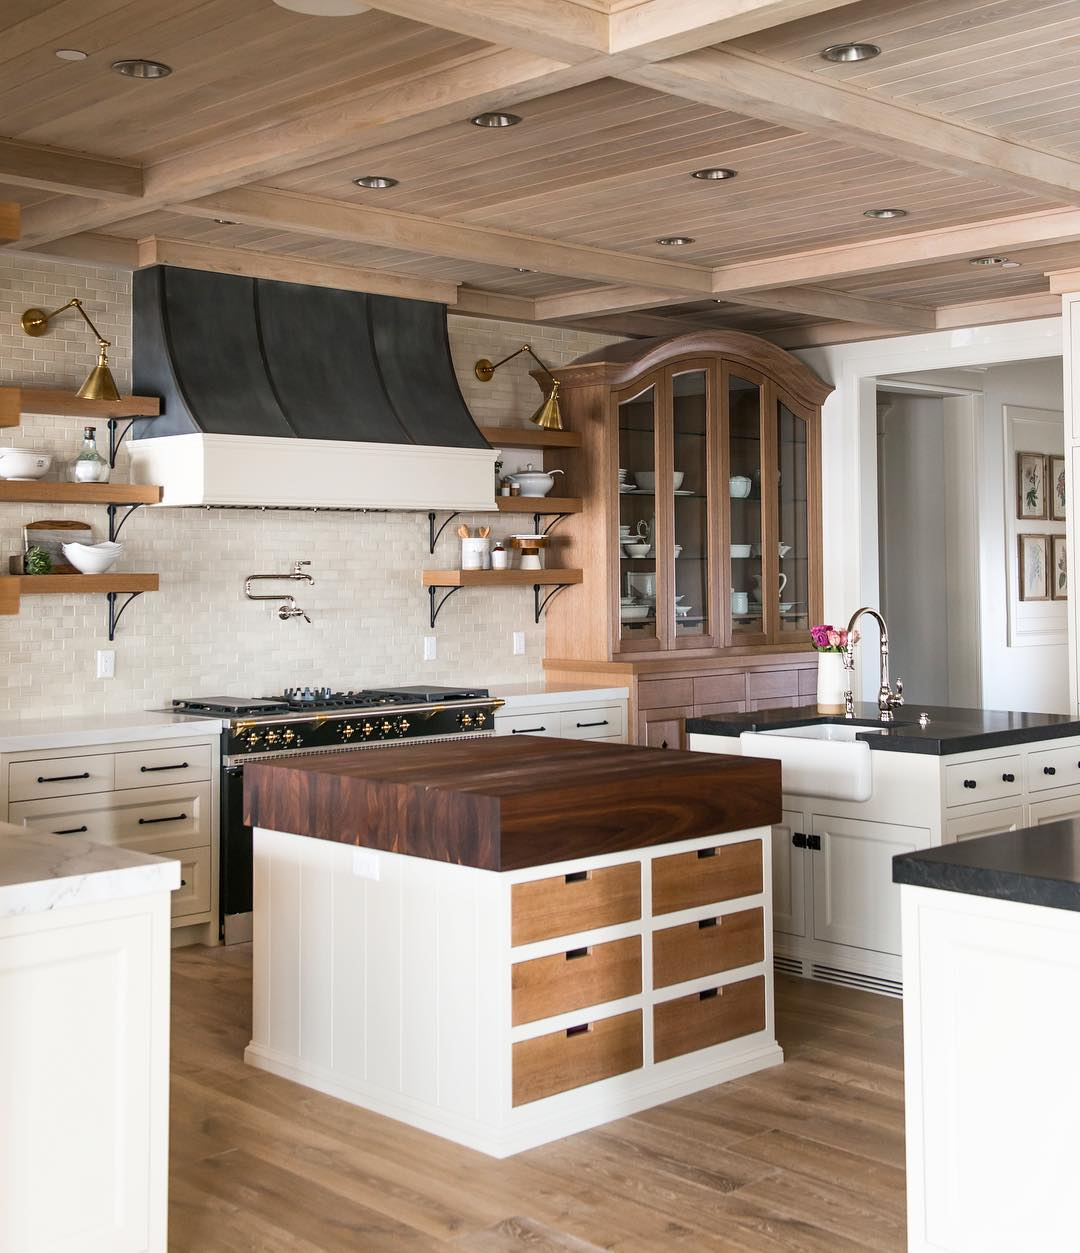 3 Inspirational Kitchens with Two Islands